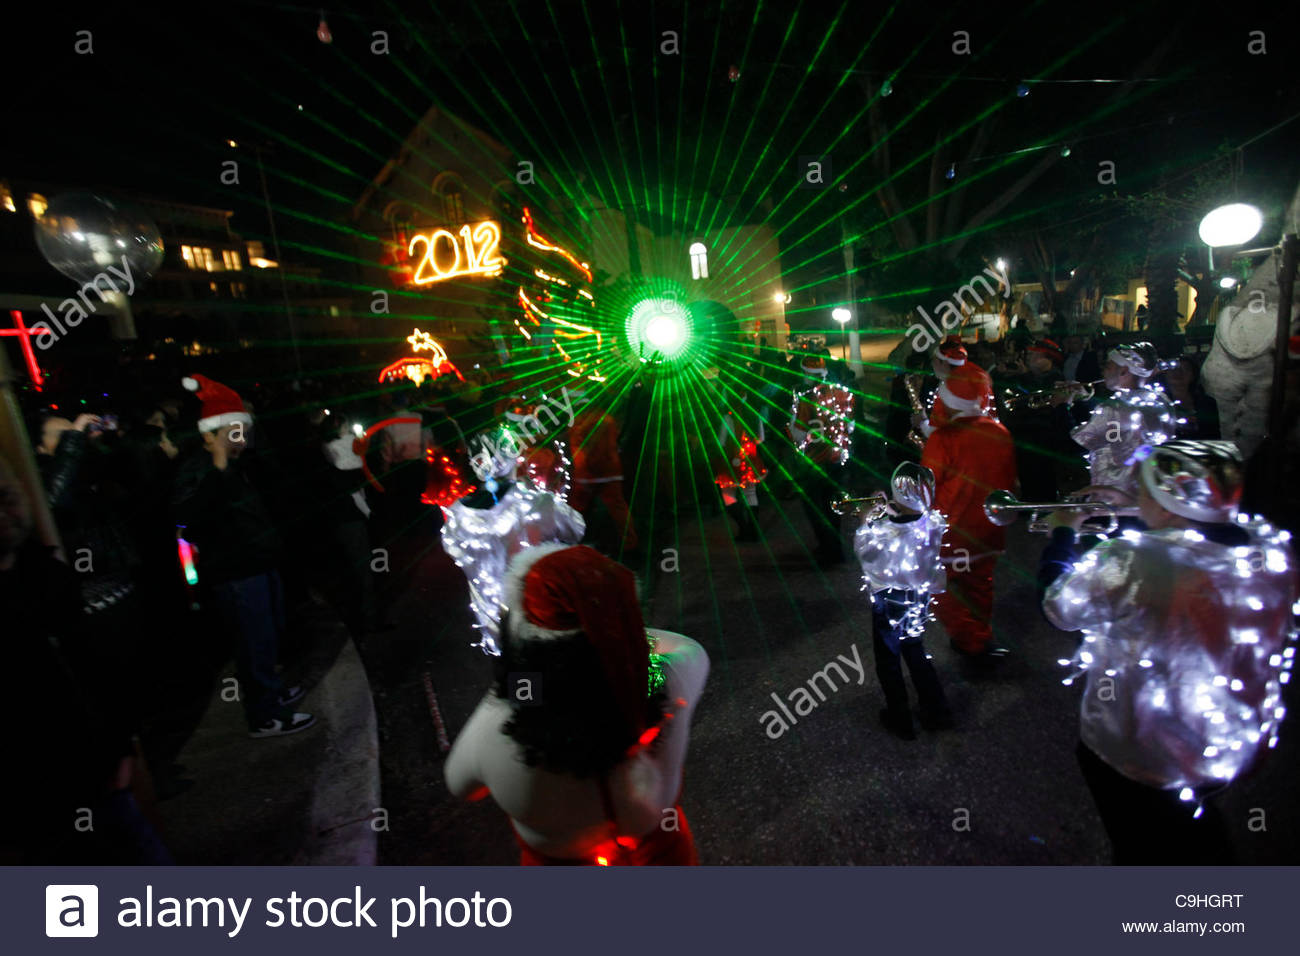 Israeli Arab Christians participate in a traditional Orthodox Christmas parade in Jaffa Israel - Stock Image